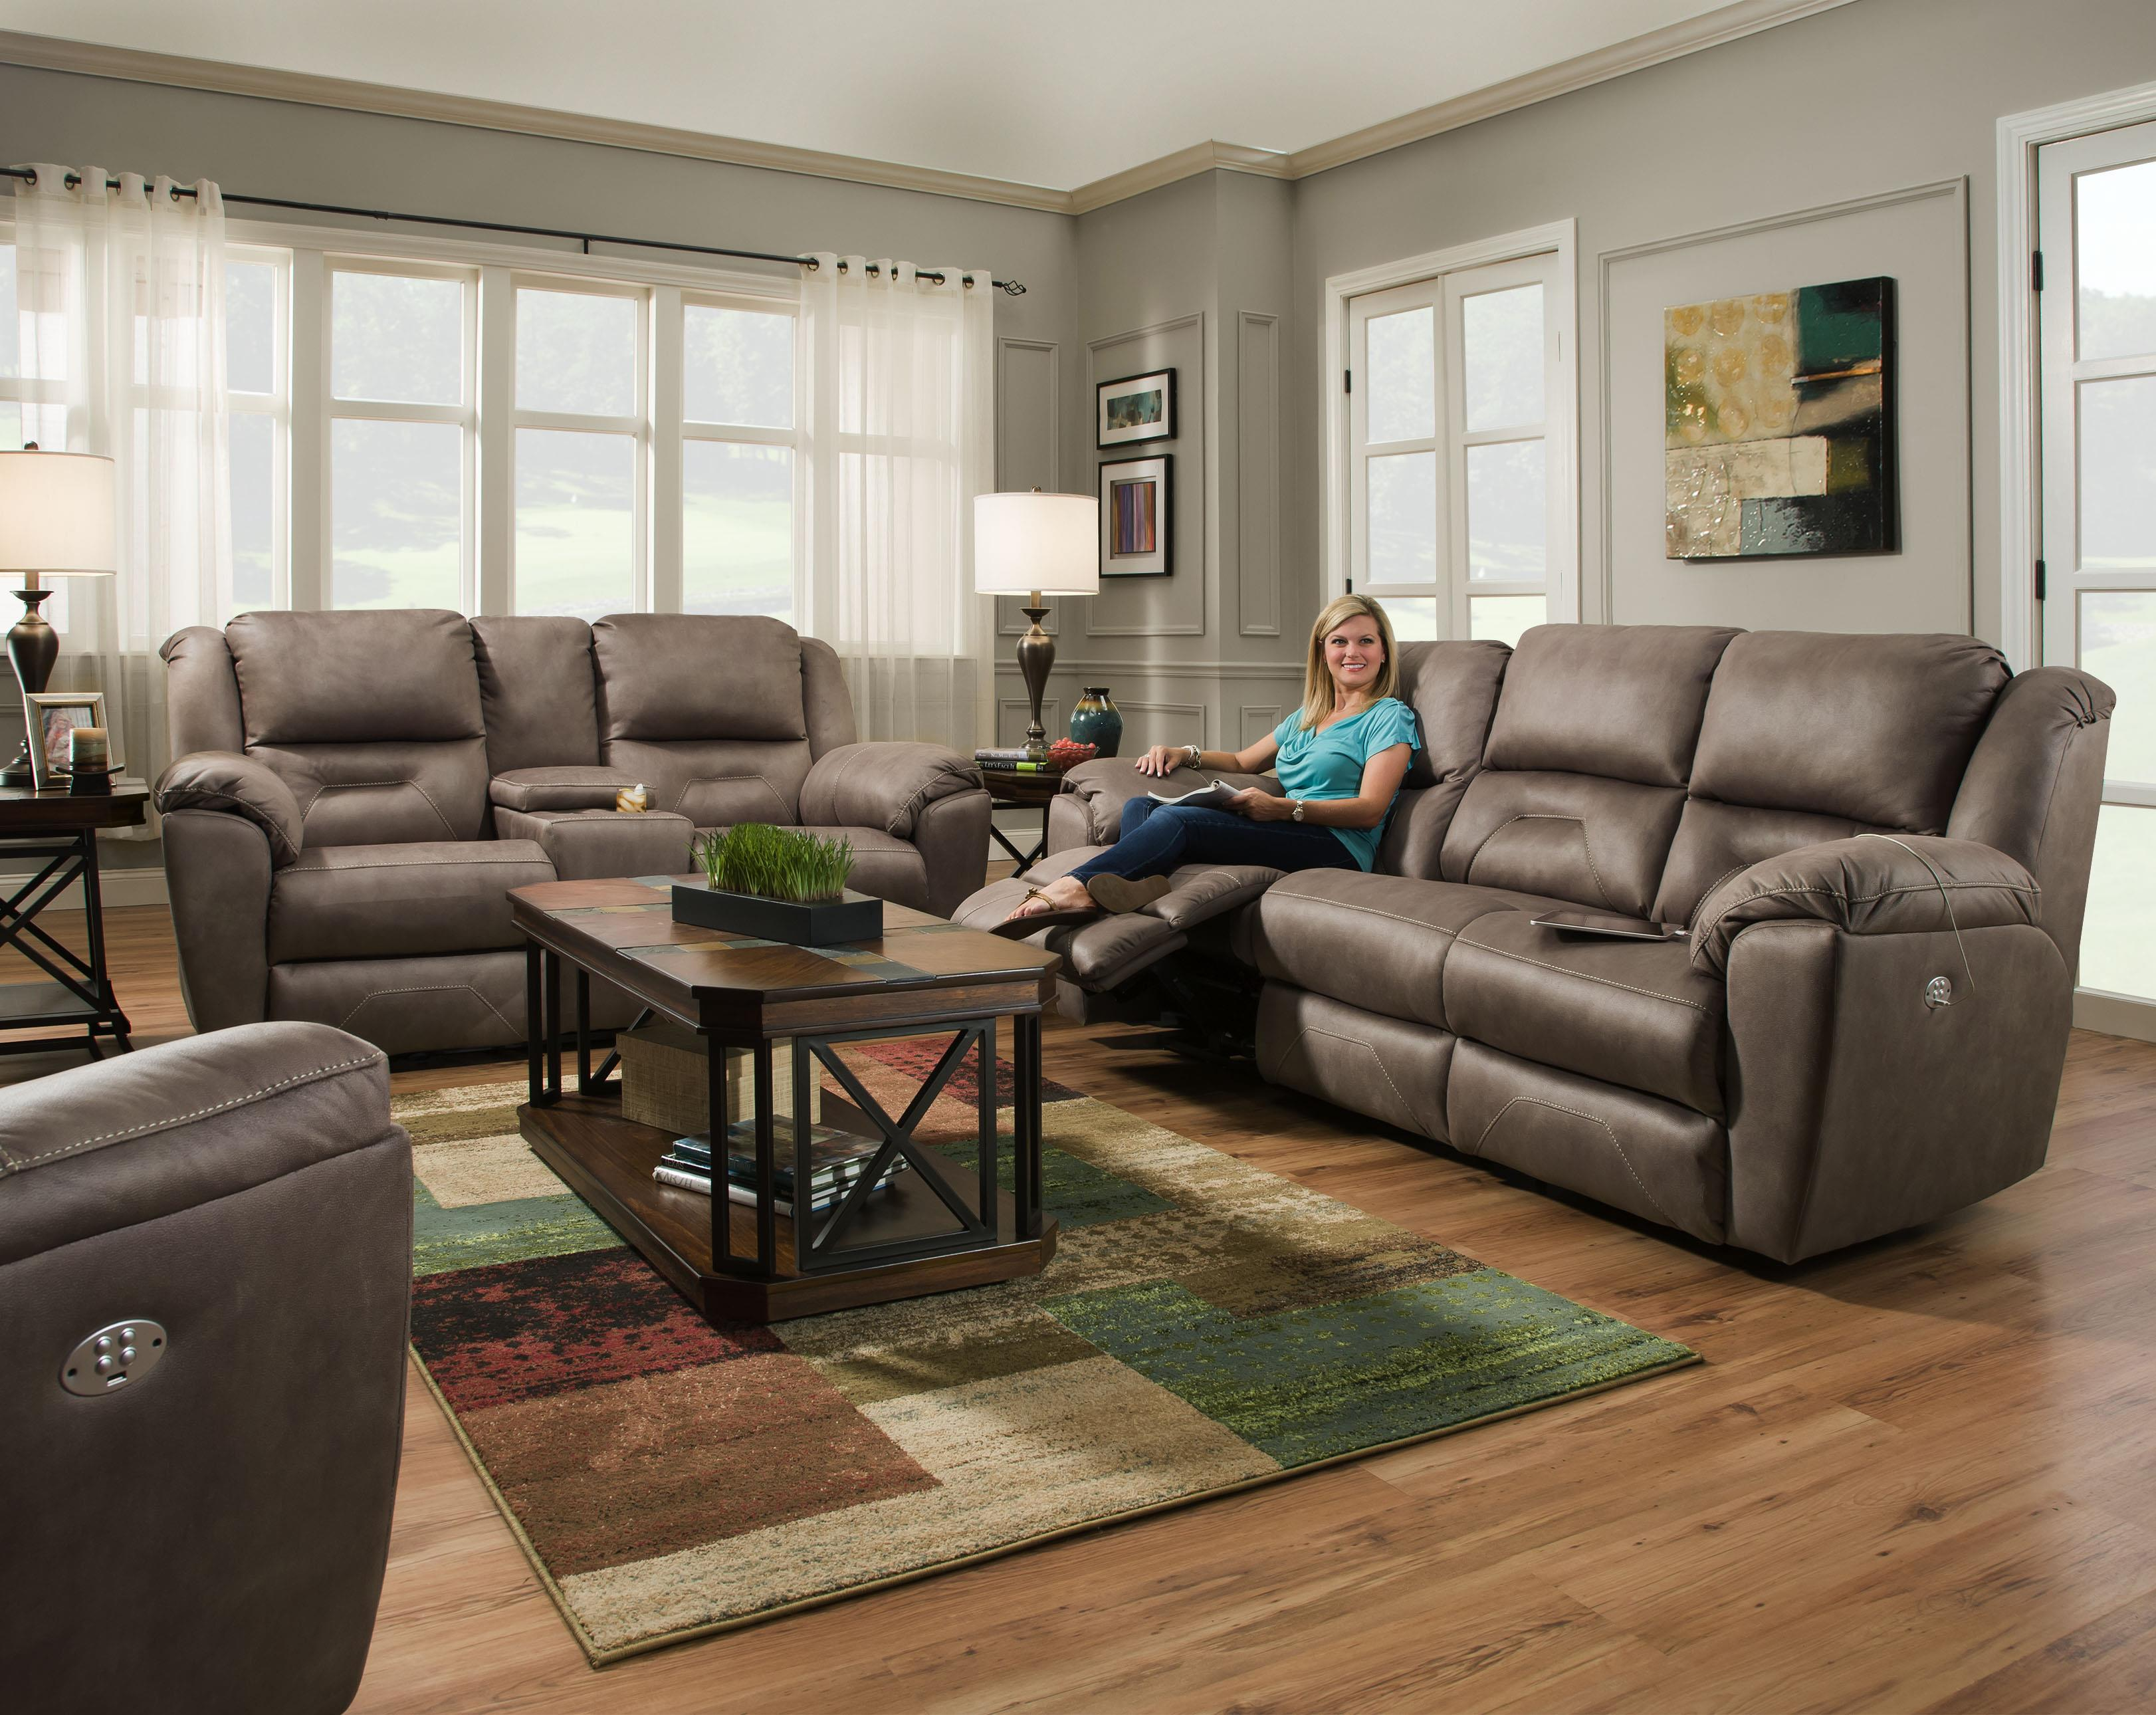 Southern motion pandora reclining living room group becker furniture world reclining living for Motion living room furniture